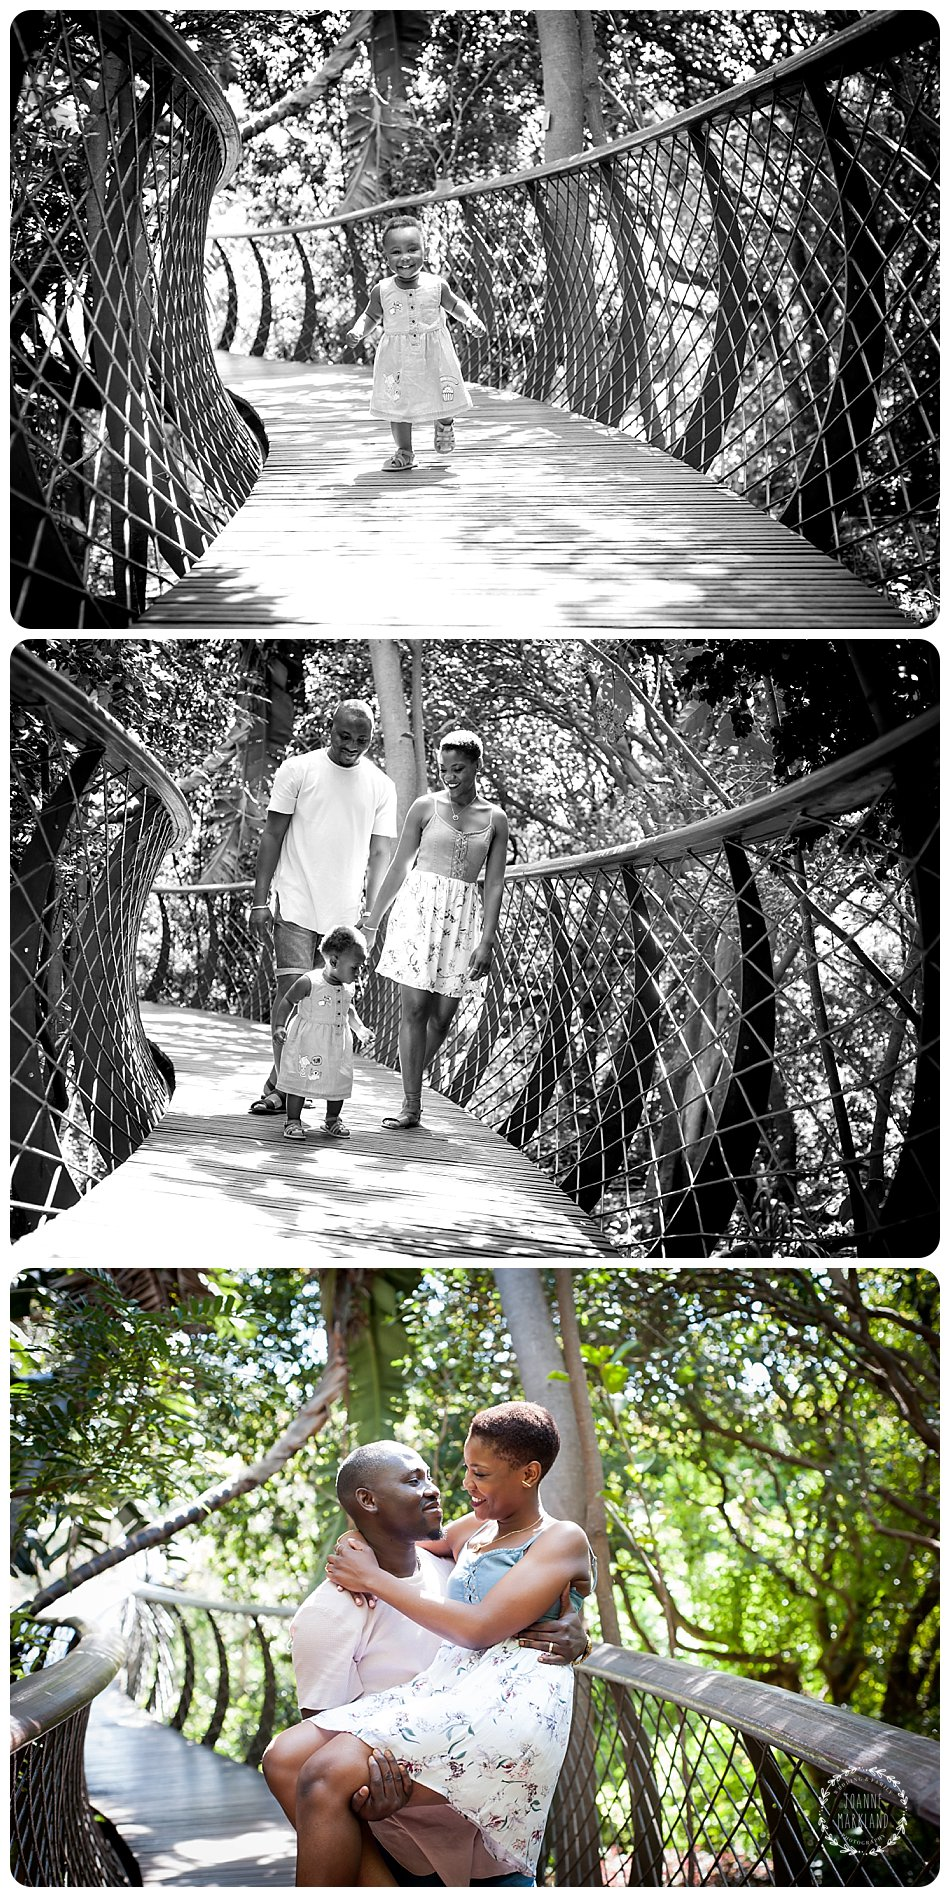 cape town family photographer, top family photographer cape town, kirstenbosch, kirstenbosch family portraits, family portraits, joanne markland photography, family photo shoot